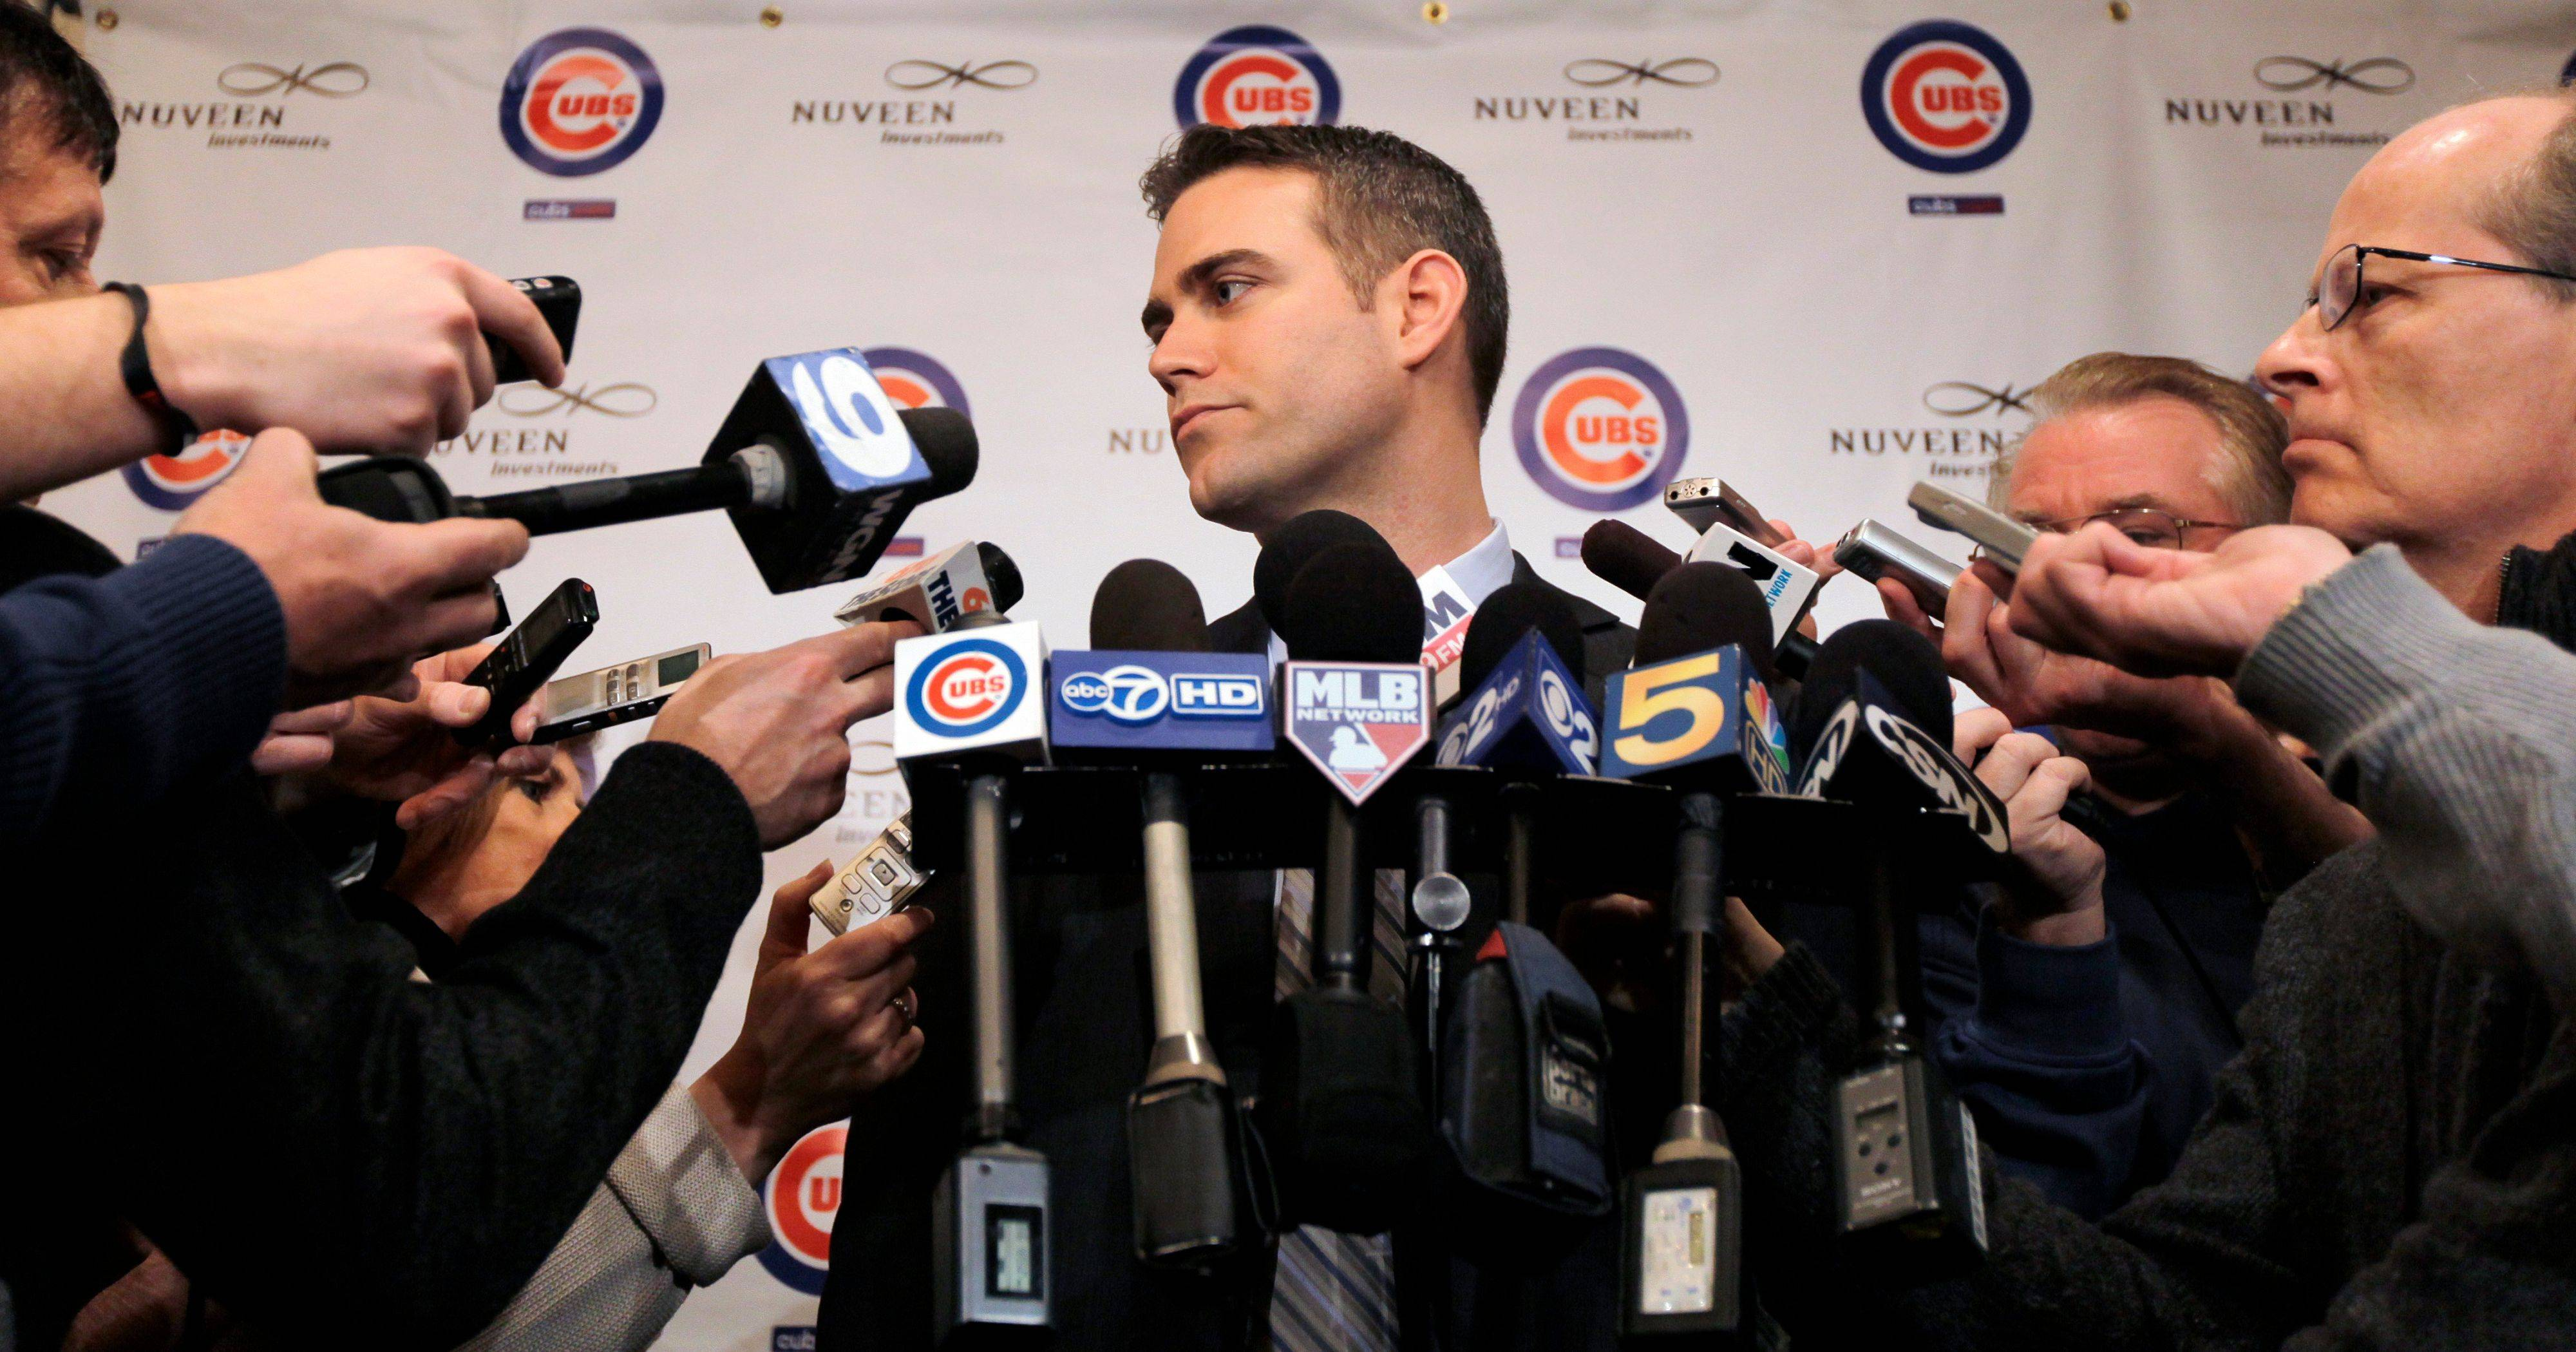 Just like Day 1 at the Cubs Convention, team President Theo Epstein received huge ovations again Saturday from fans at the Hilton Hotel in Chicago.